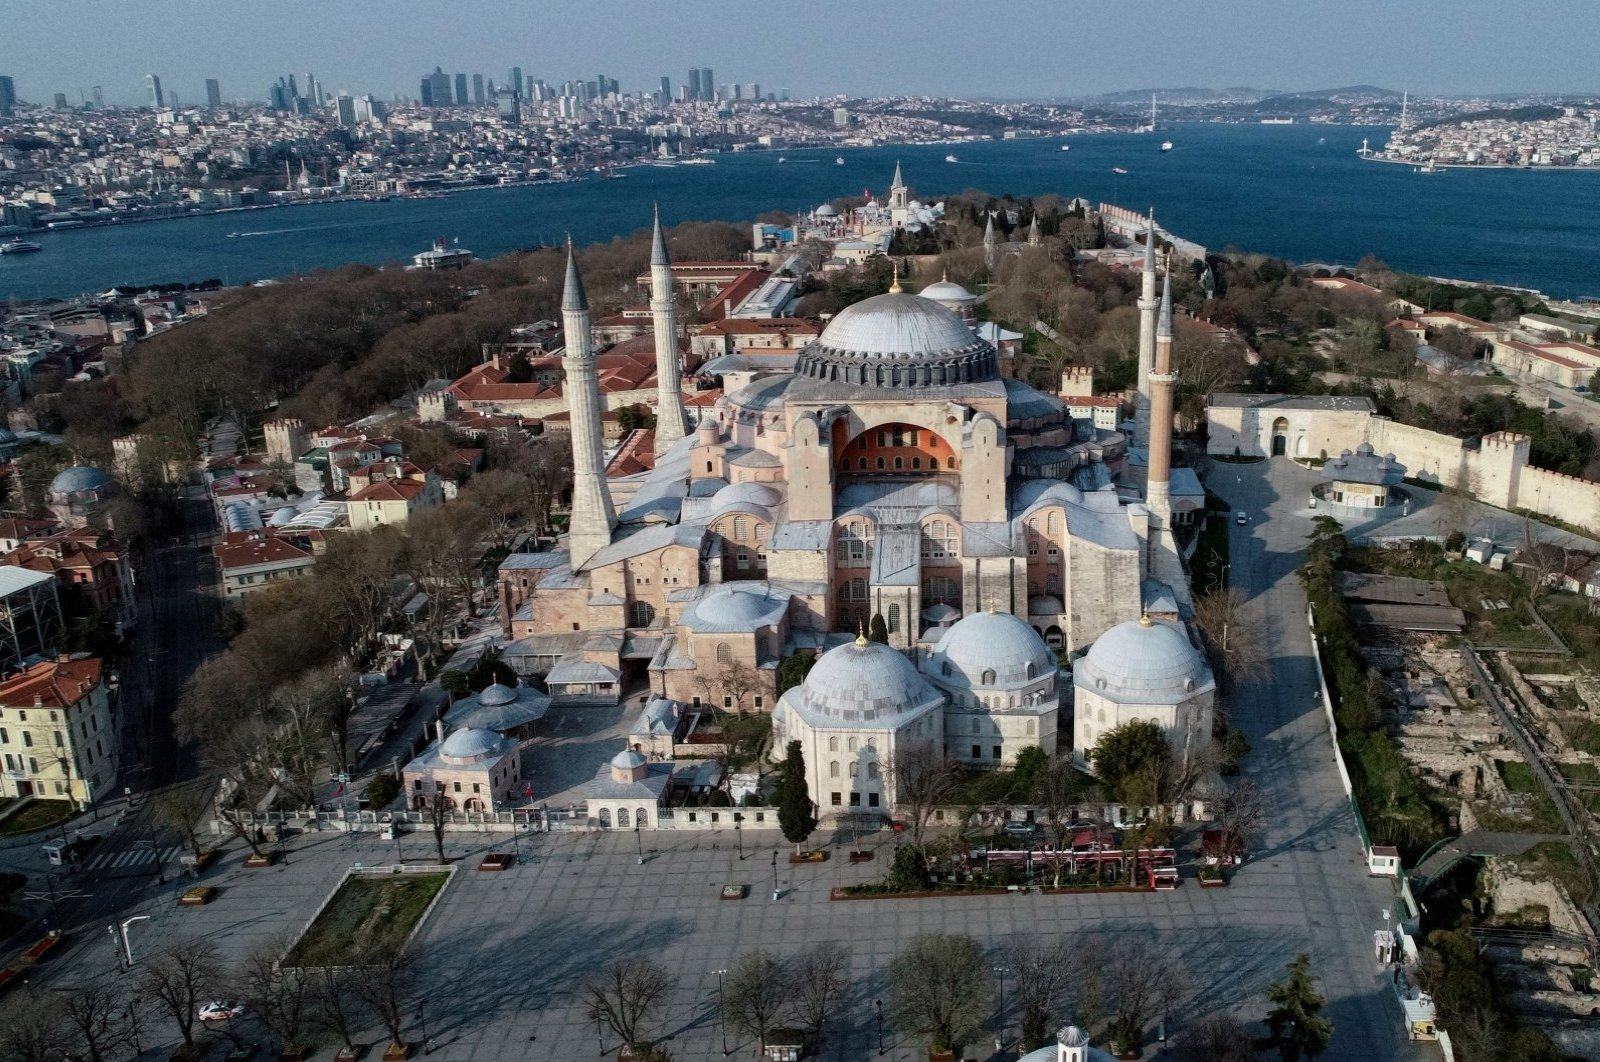 New Discoveries At Hagia Sophia To Be Shared With Scientists Via Online Symposium Daily Sabah